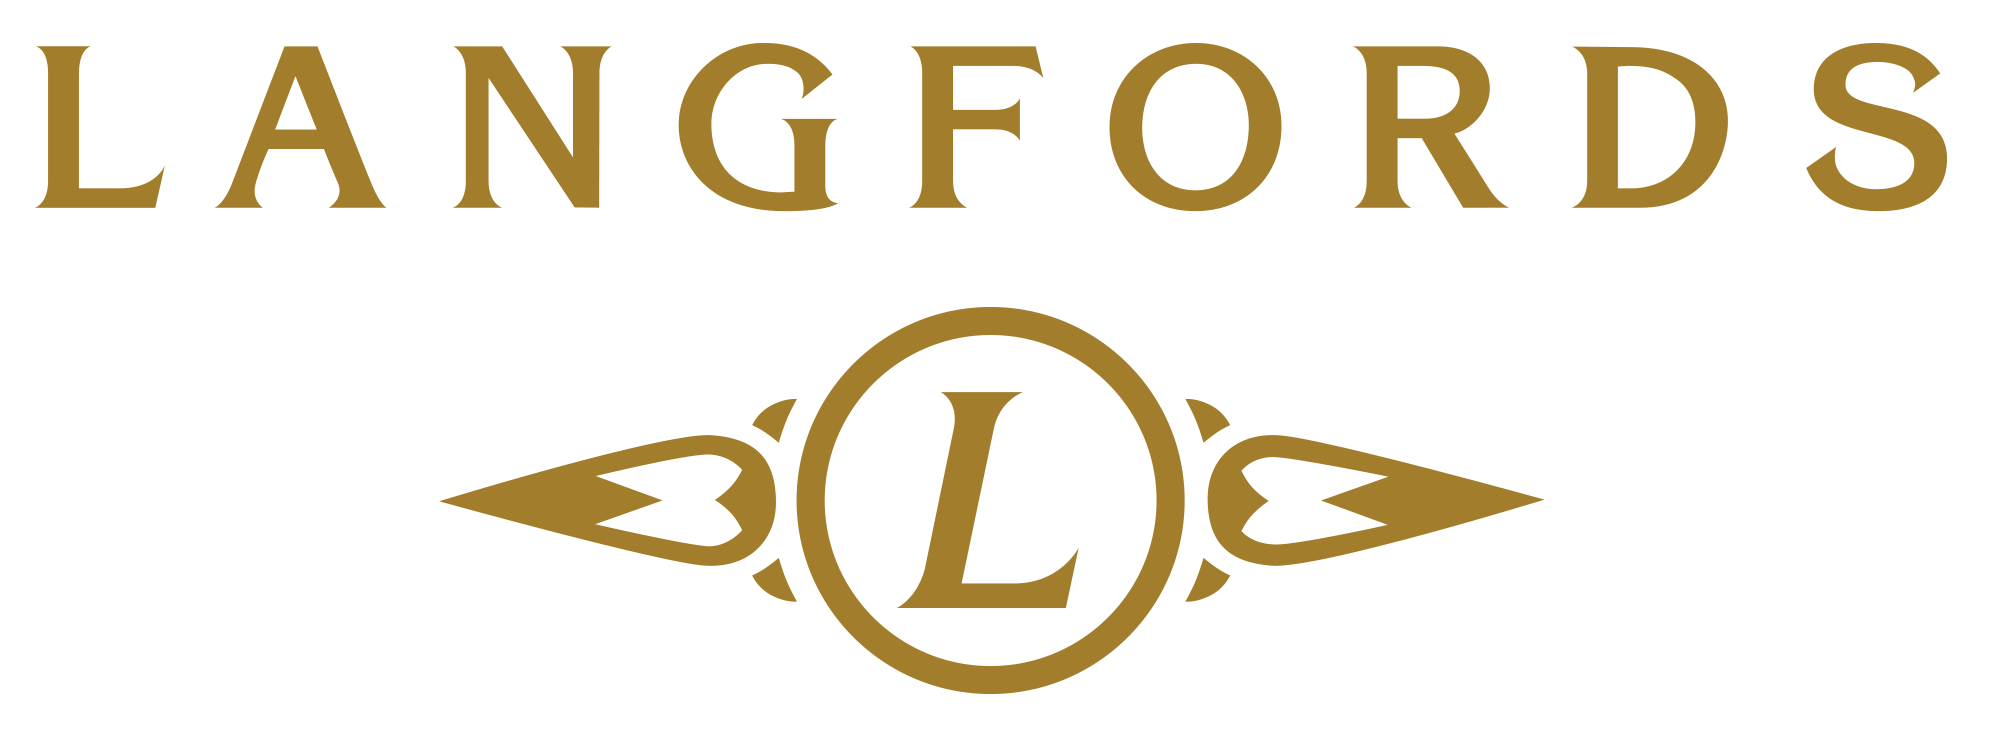 Langfords_Logo.png